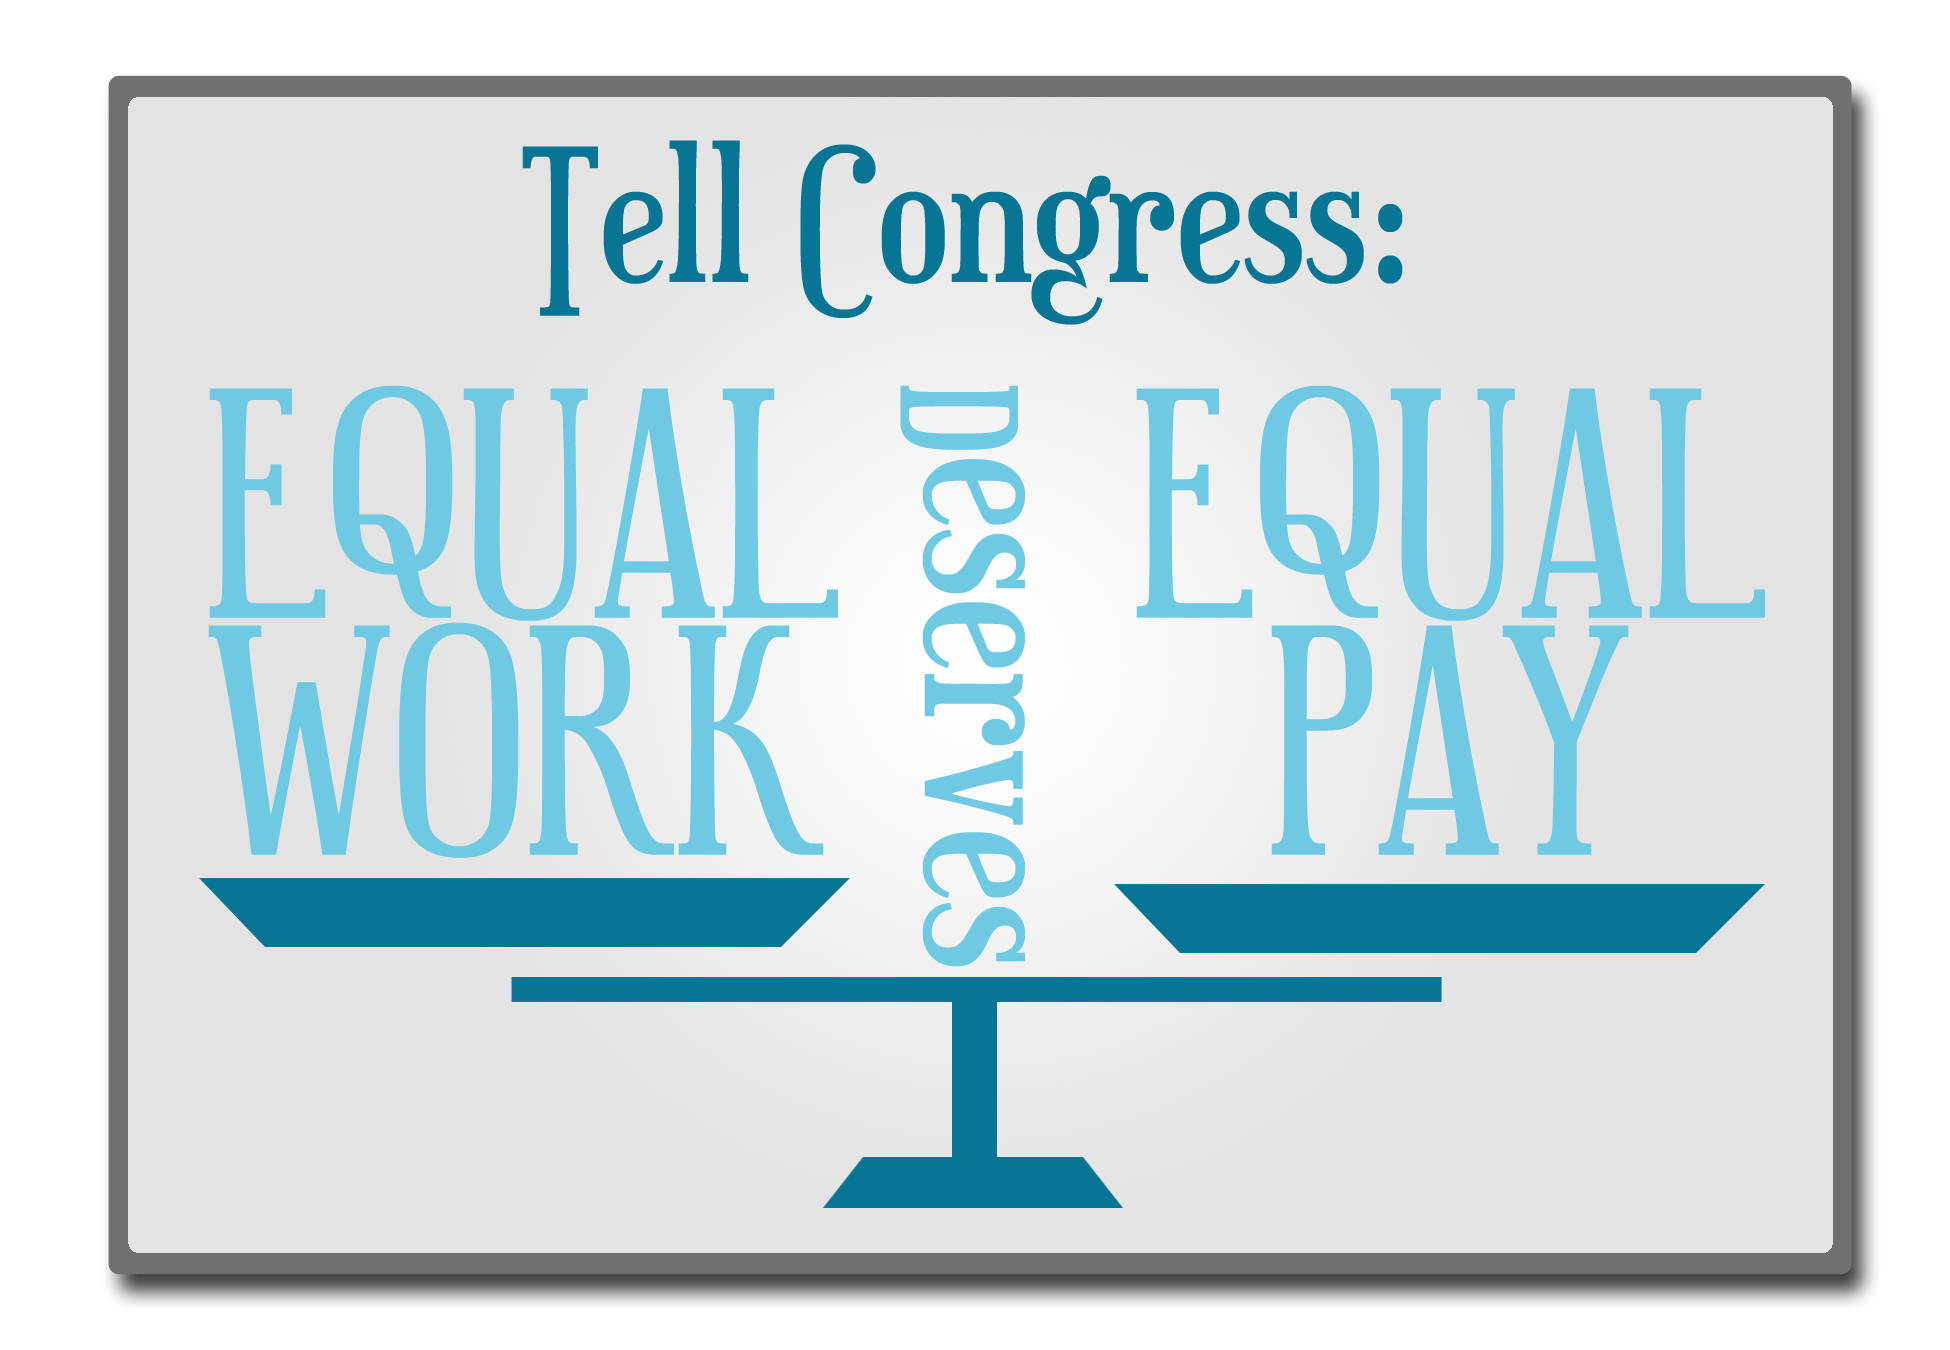 Tell congress: equal work deserves equal pay!